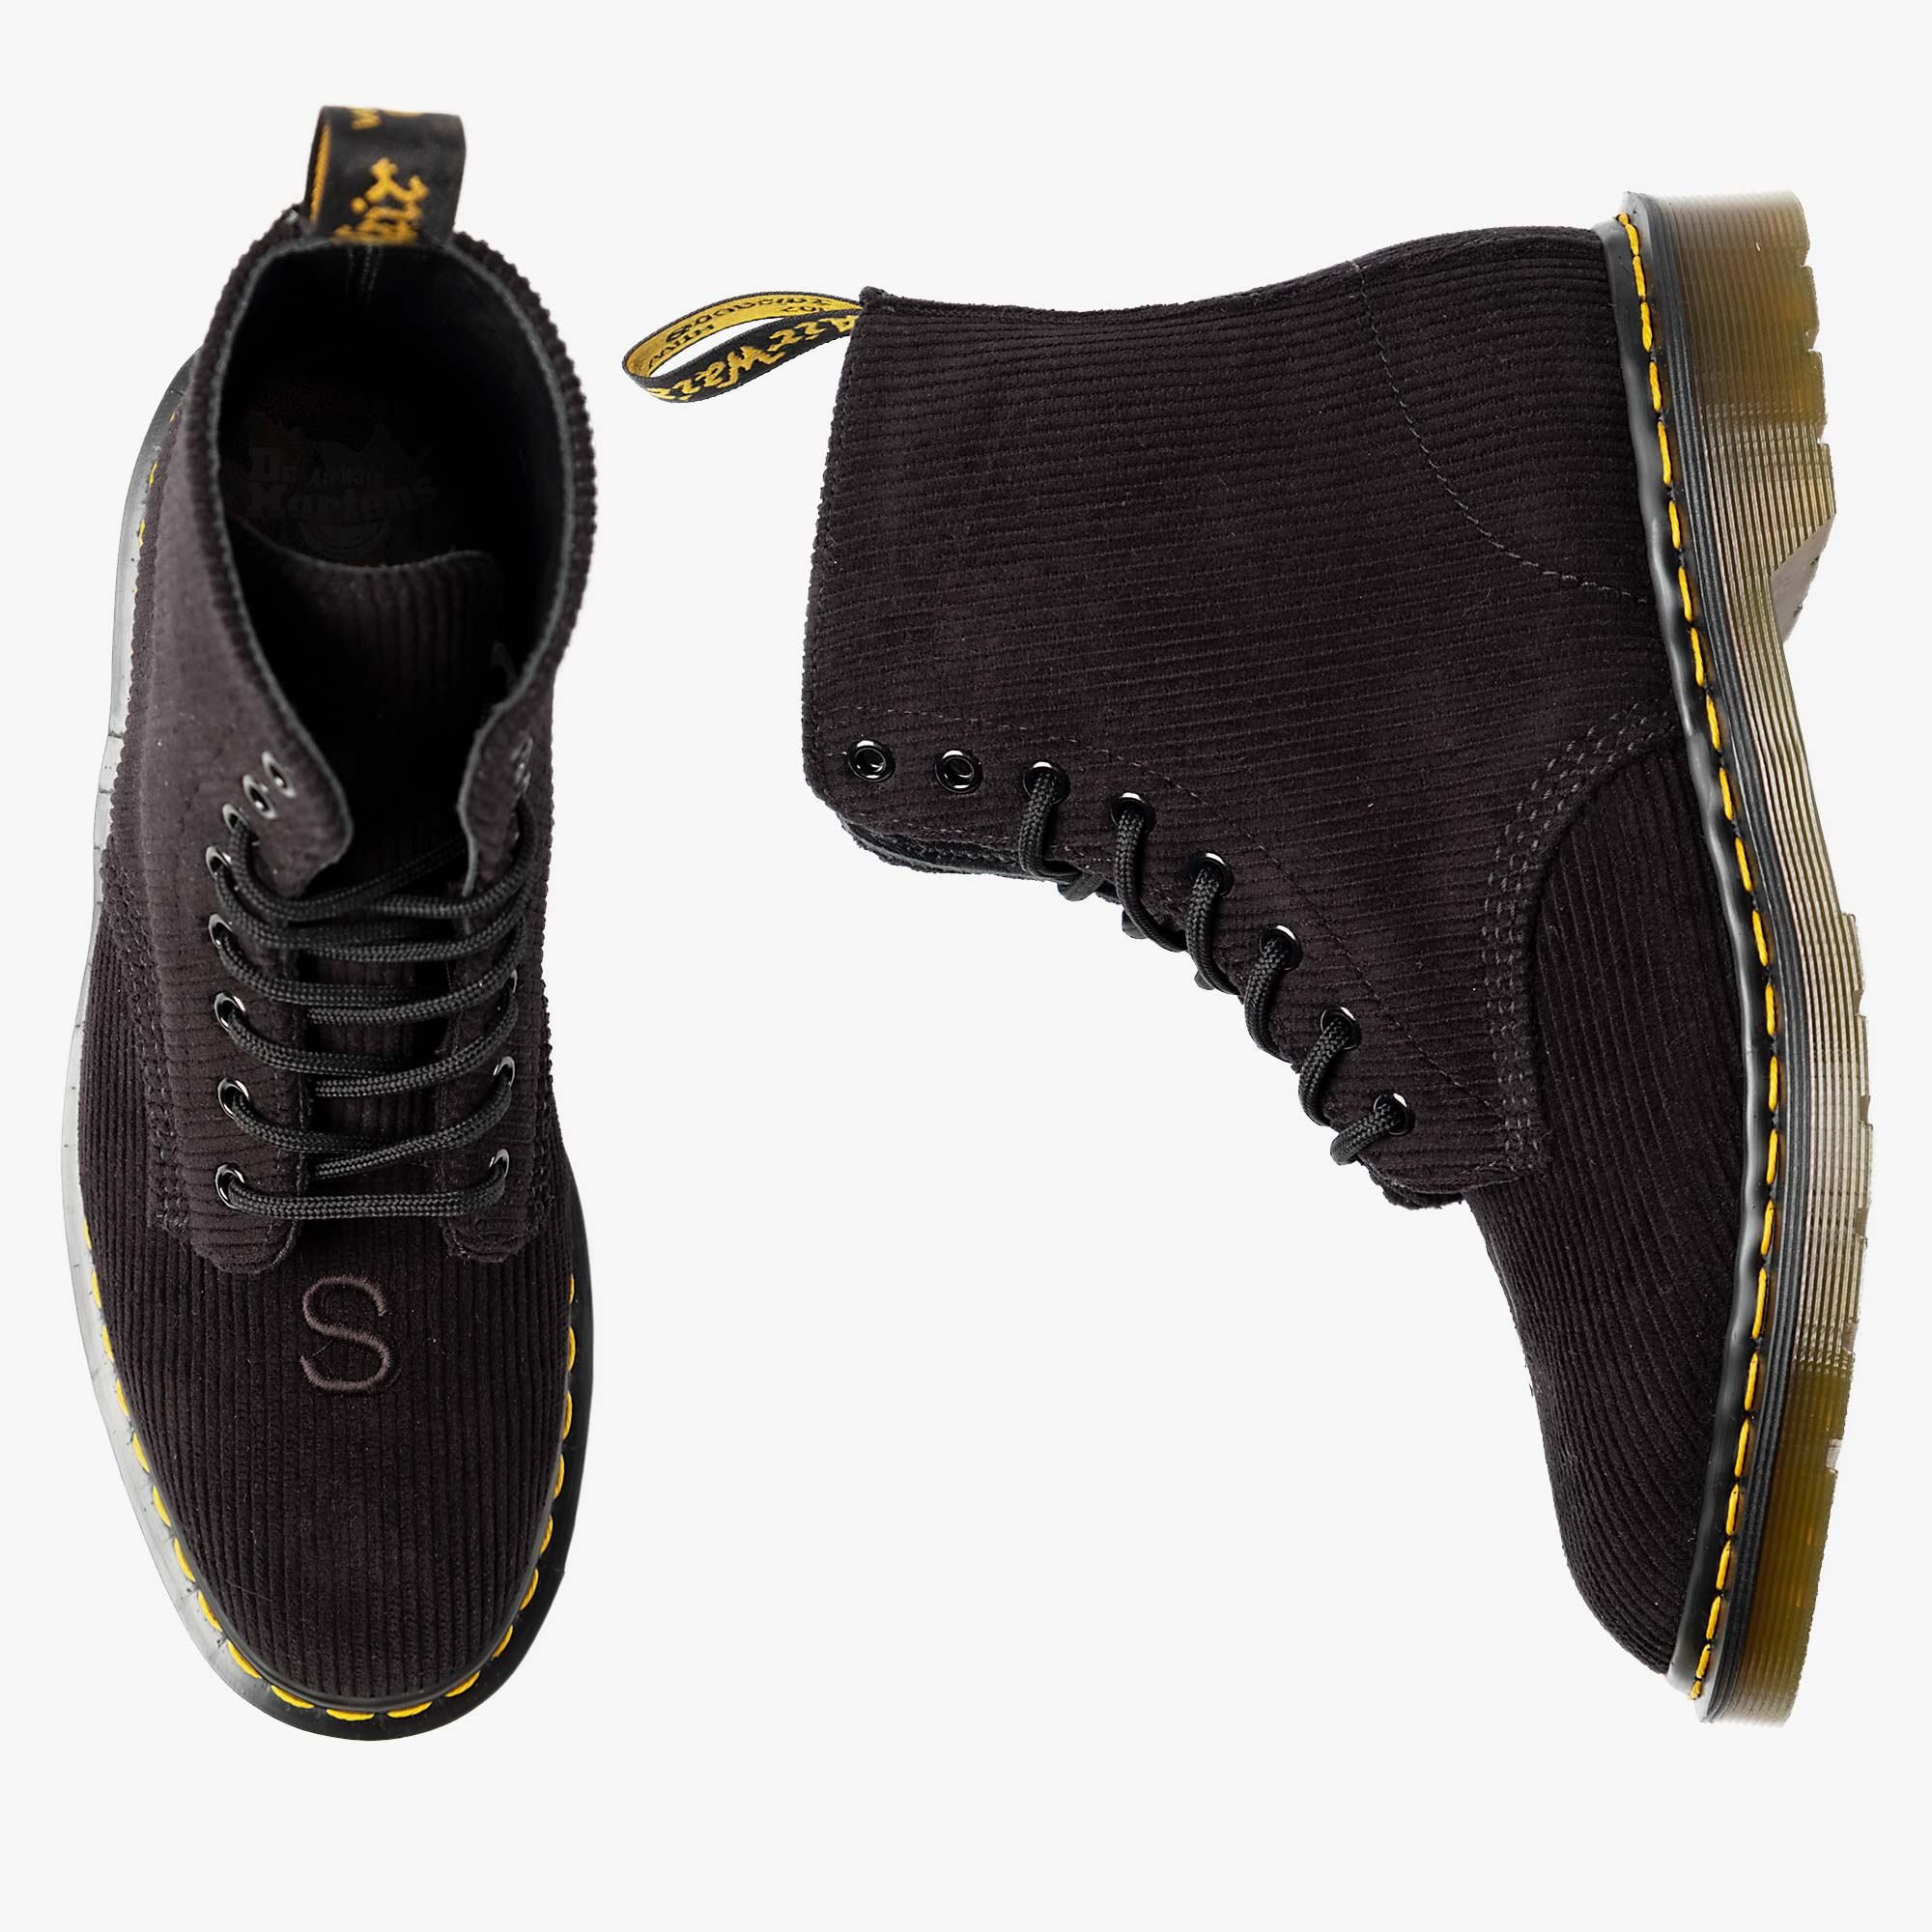 Undercover Undercover x Dr. Martens 1460 Corduroy - Black 1